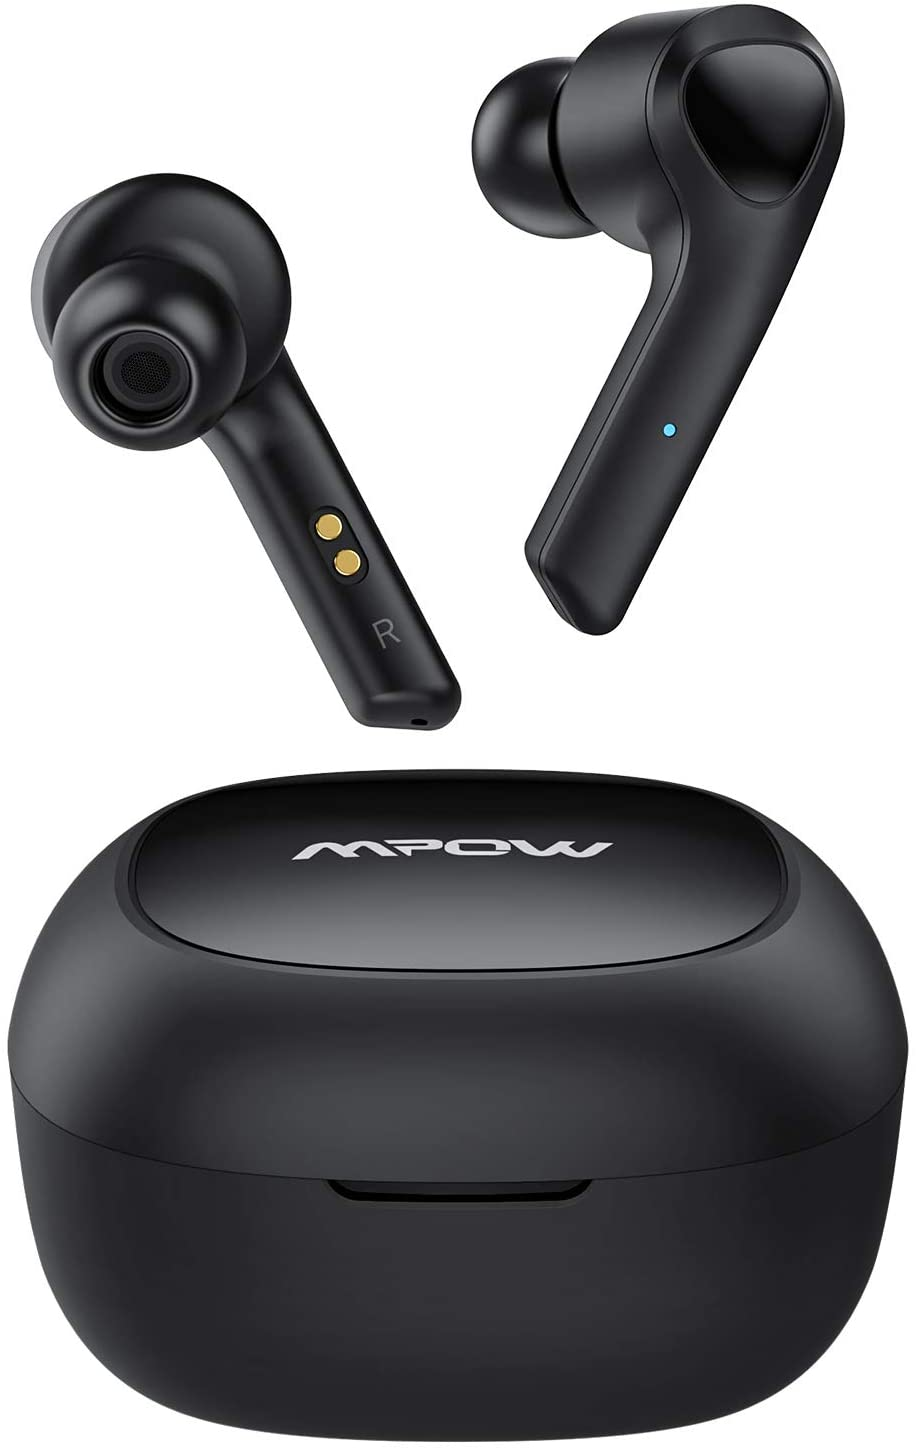 [Deal] Mpow's MS1 True Wireless Earbuds are down to just $13 on Amazon - TalkAndroid.com